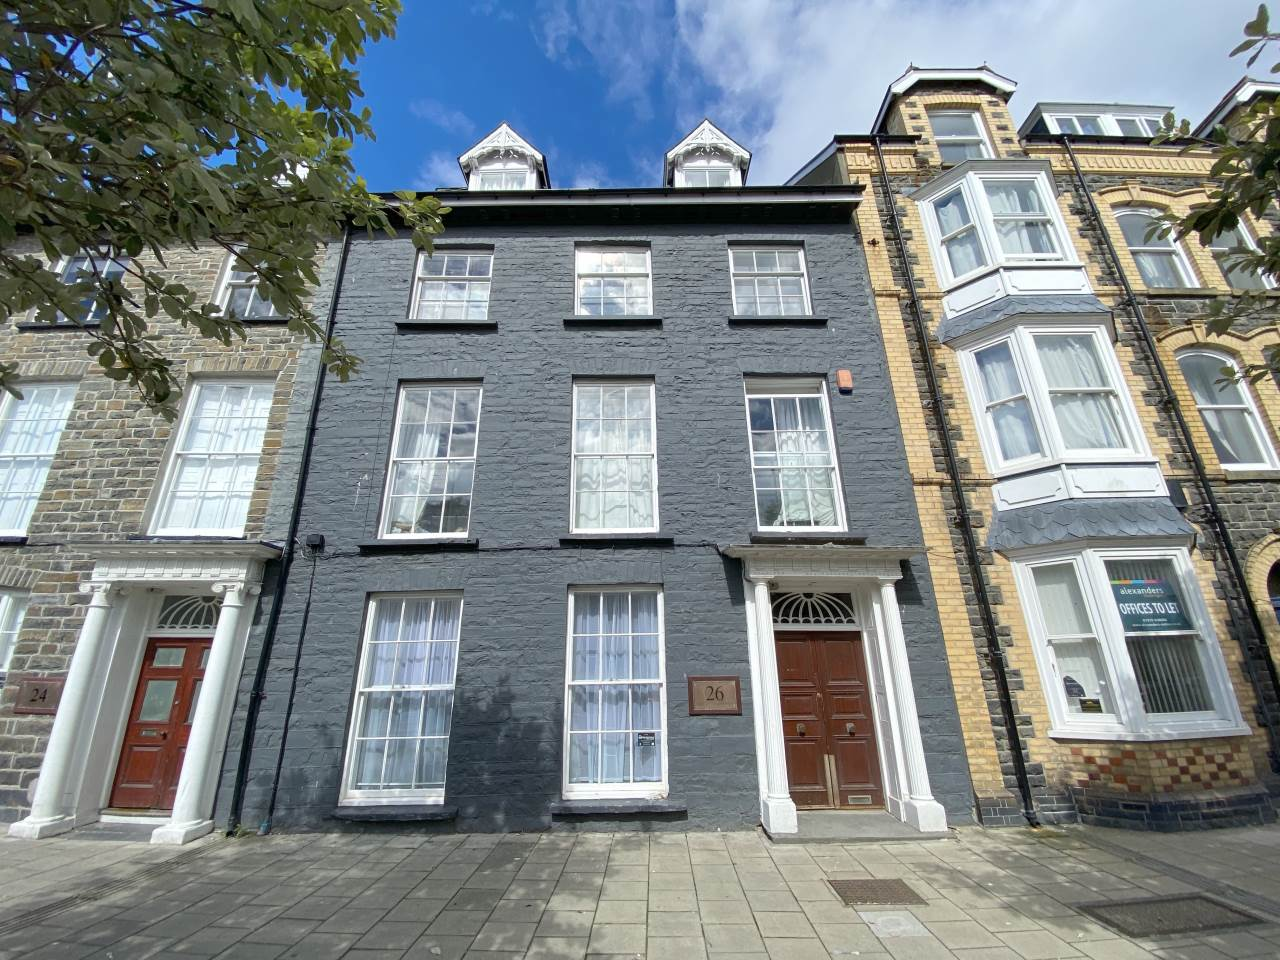 5 bed flat to rent in North Parade, Aberystwyth - Property Image 1